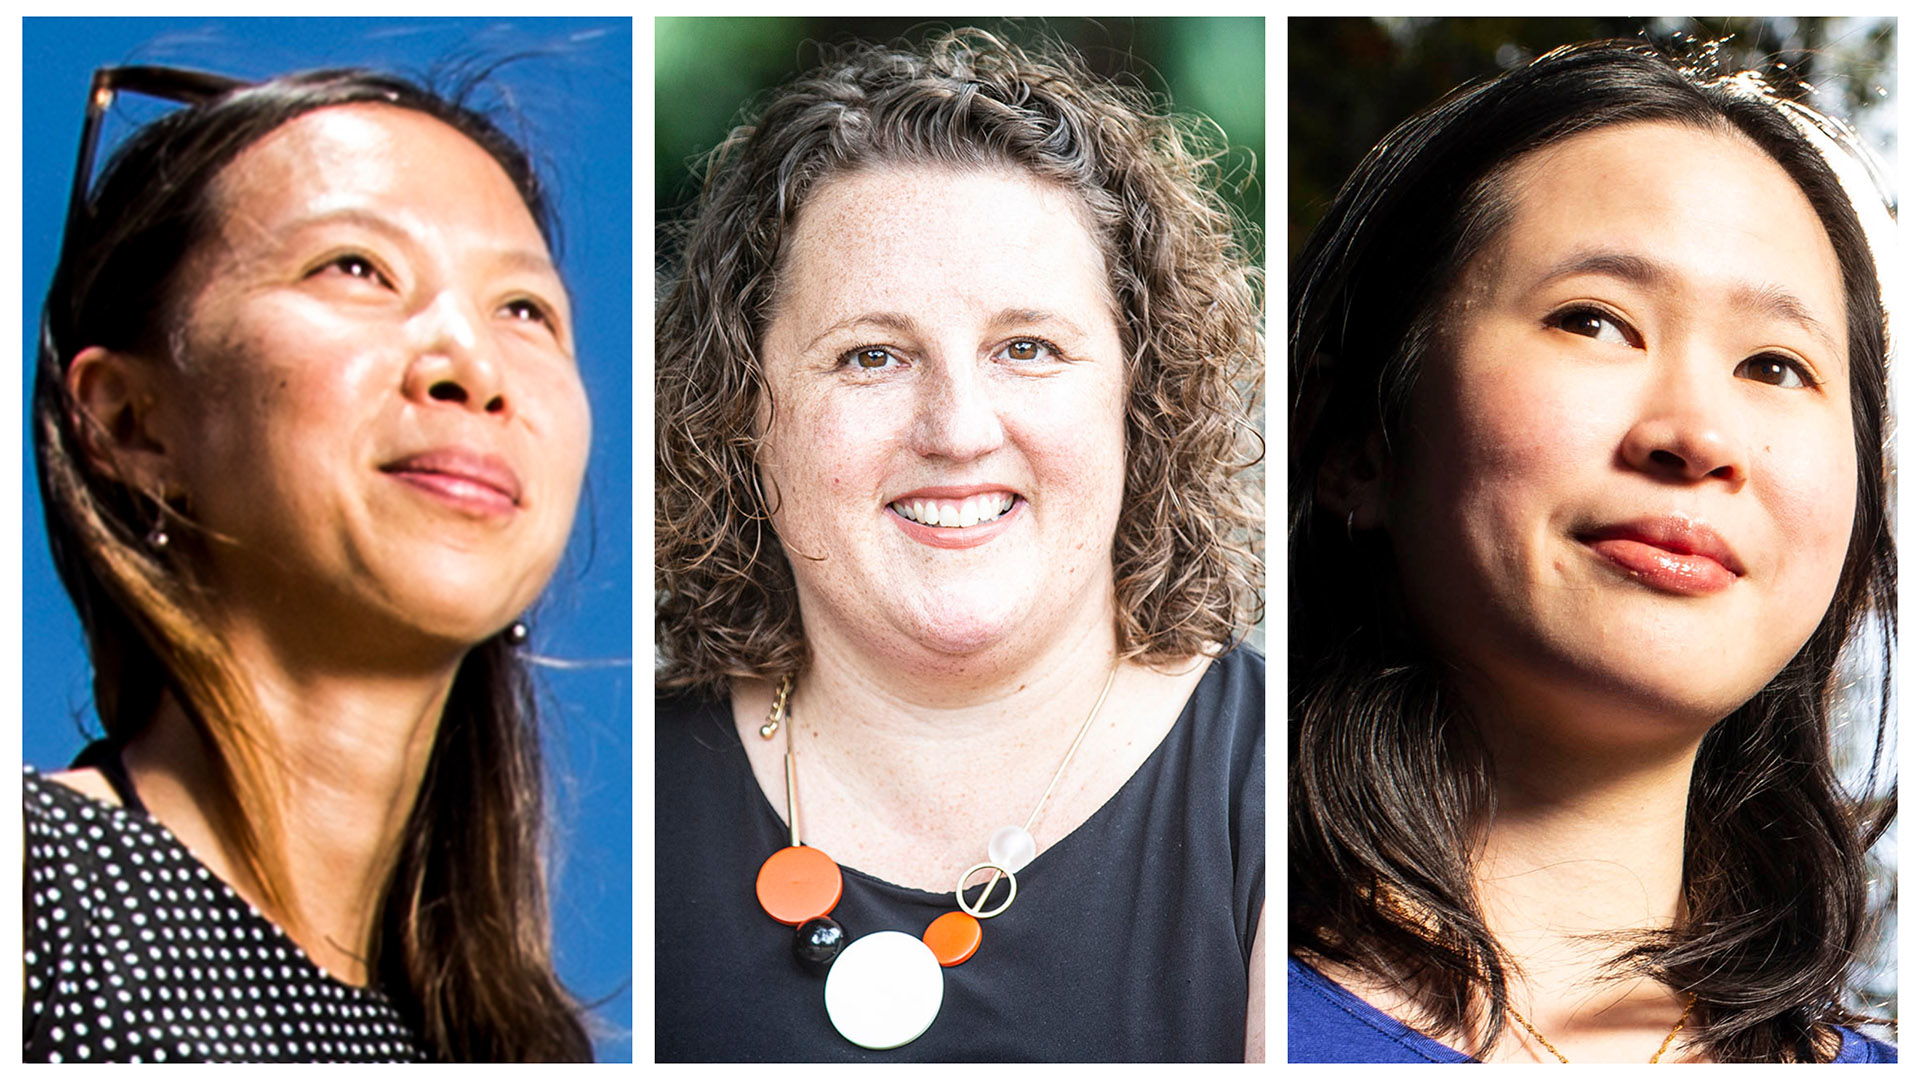 Marian Wong, Holly Tootell and Yee Lian Chew have been named as Suprstars of STEM for 2021 - 2022